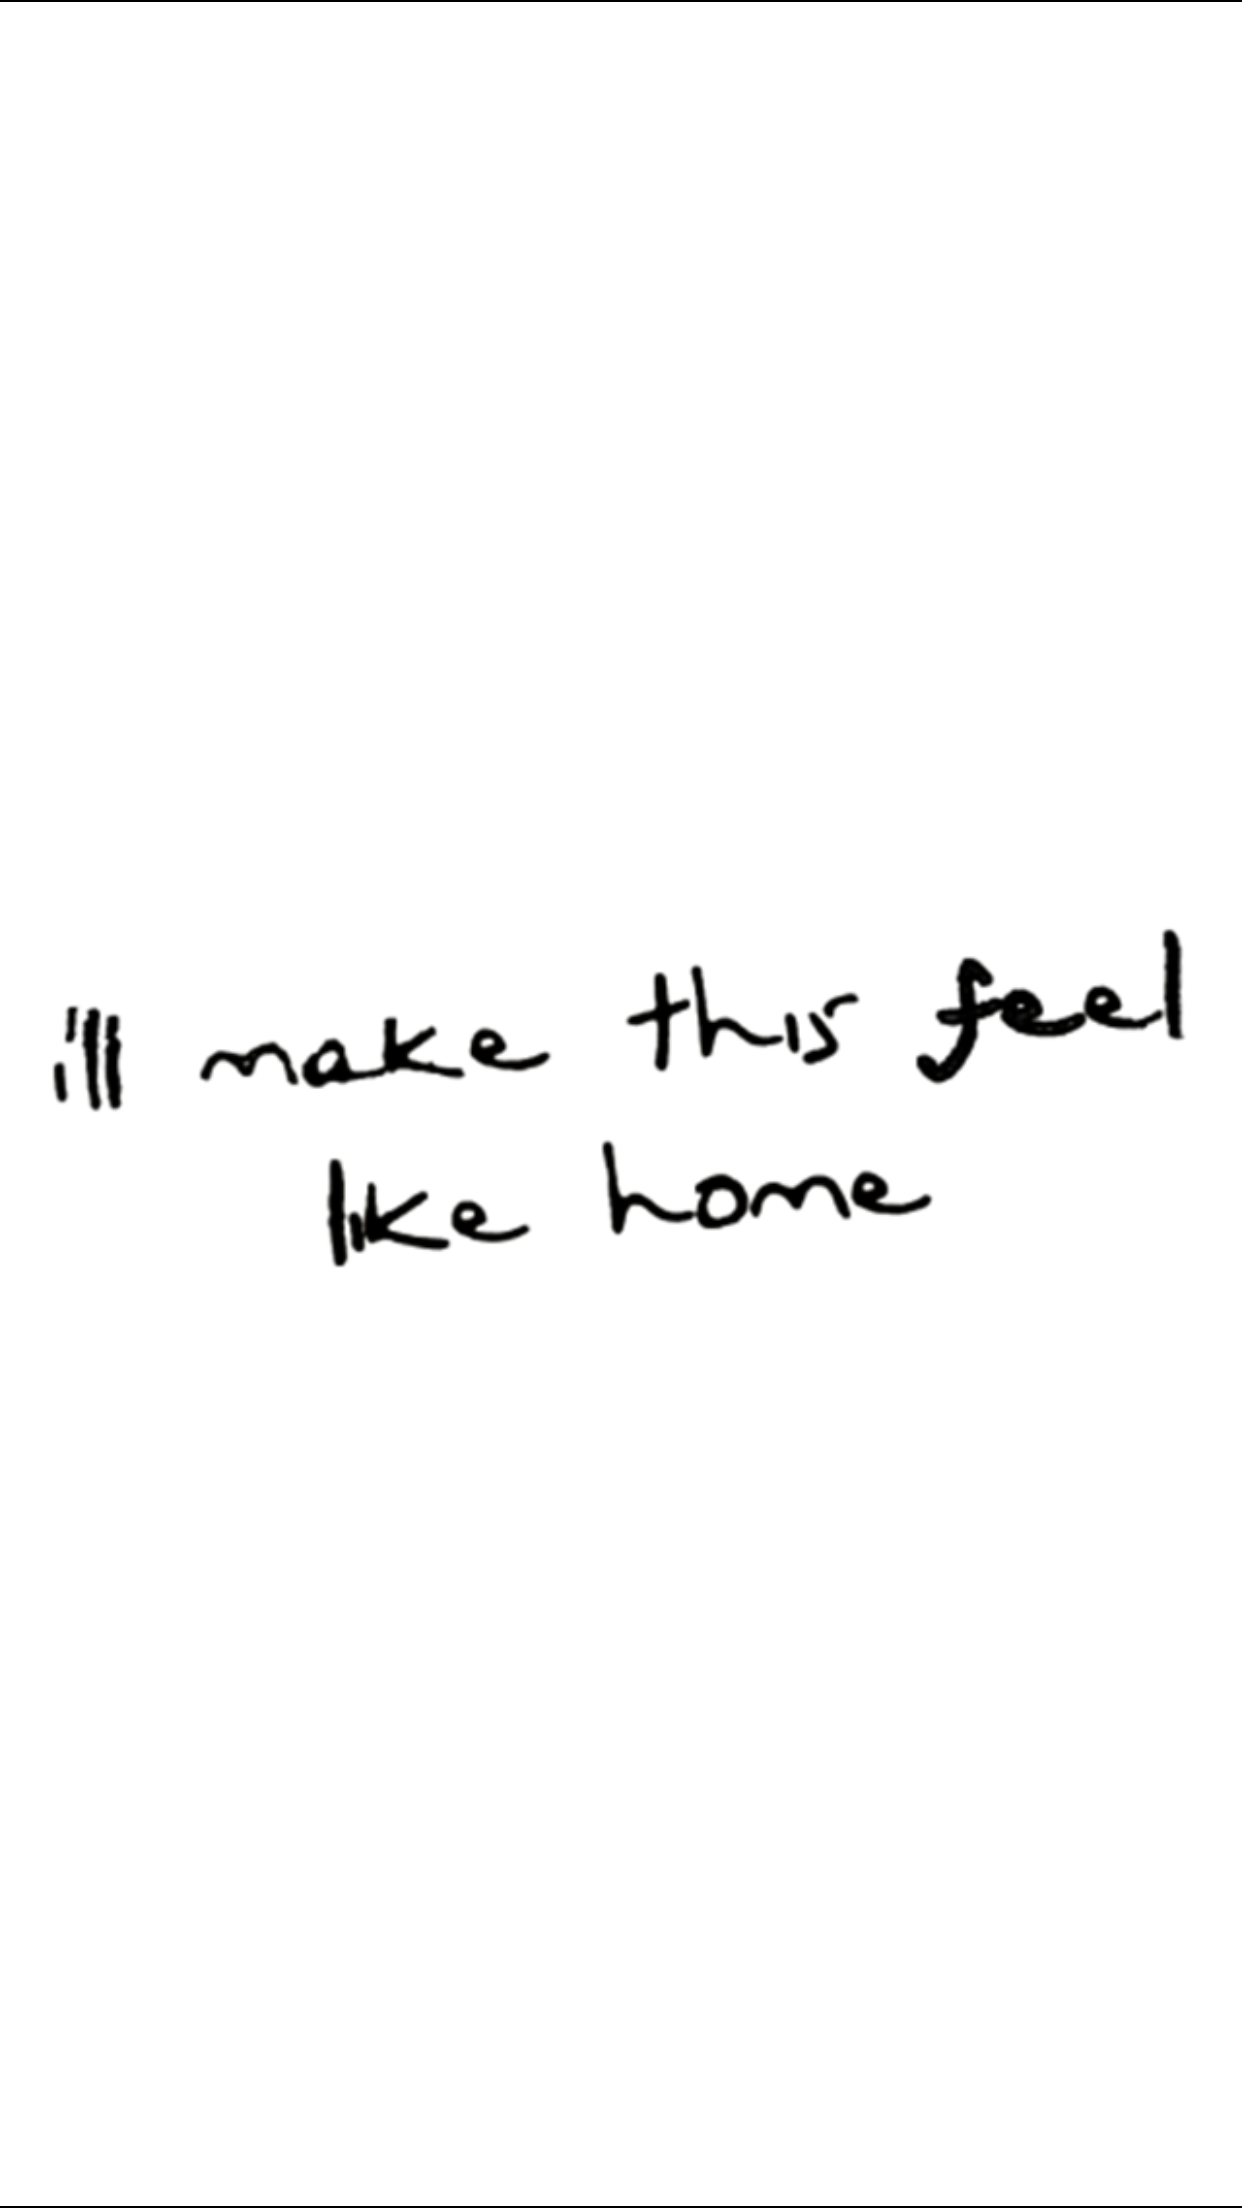 Home One Direction One Direction Tattoos One Direction Lyrics One Direction Songs